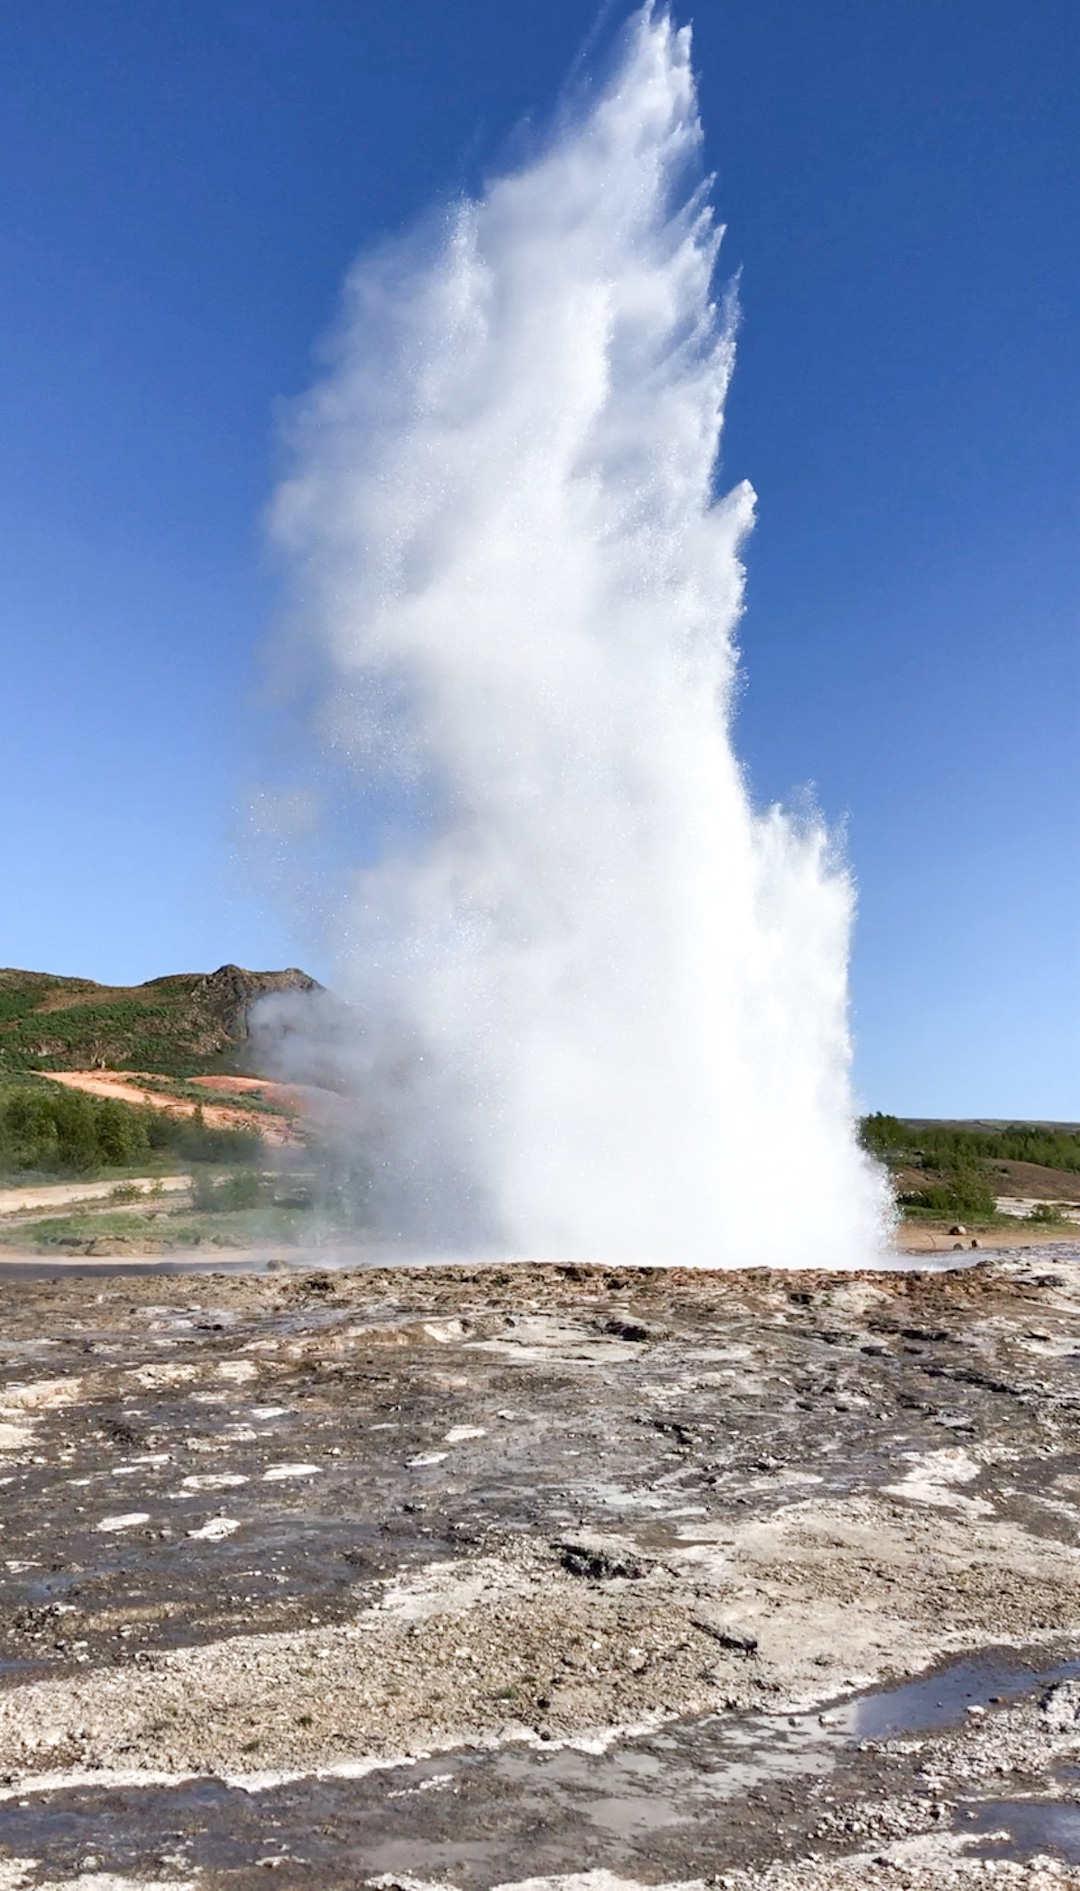 Her_Travel_Edit_Iceland_Geysir_Erupting